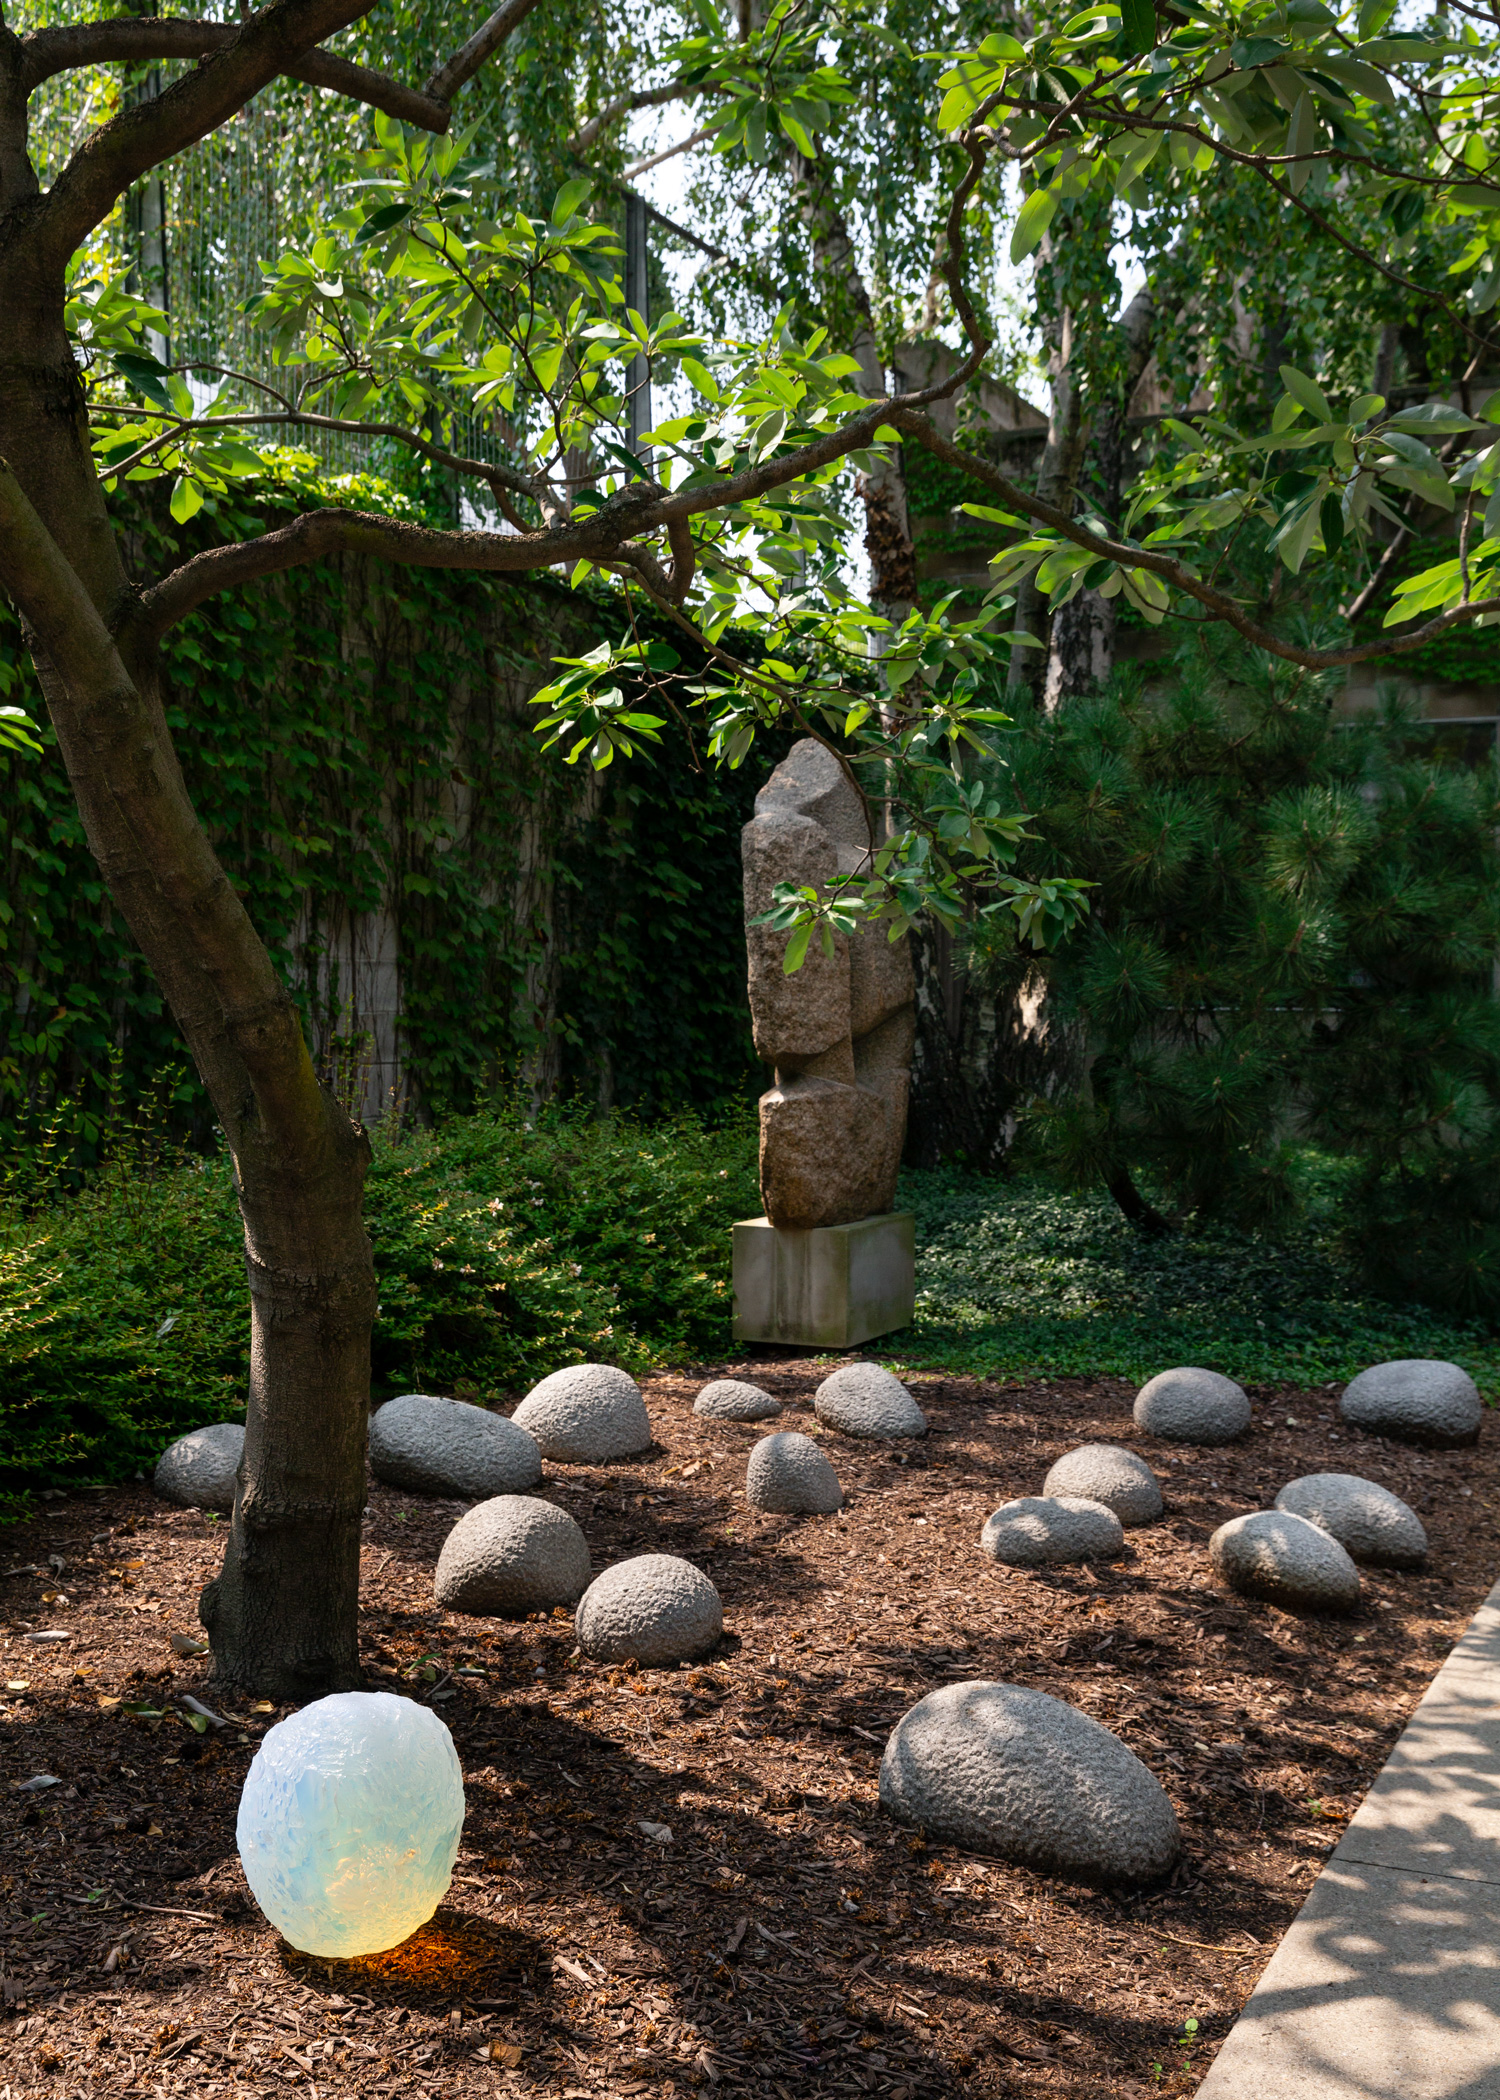 Sculptures by Objects of Common Interest interacting with Isamu Noguchi in the Noguchi Museum's garden.